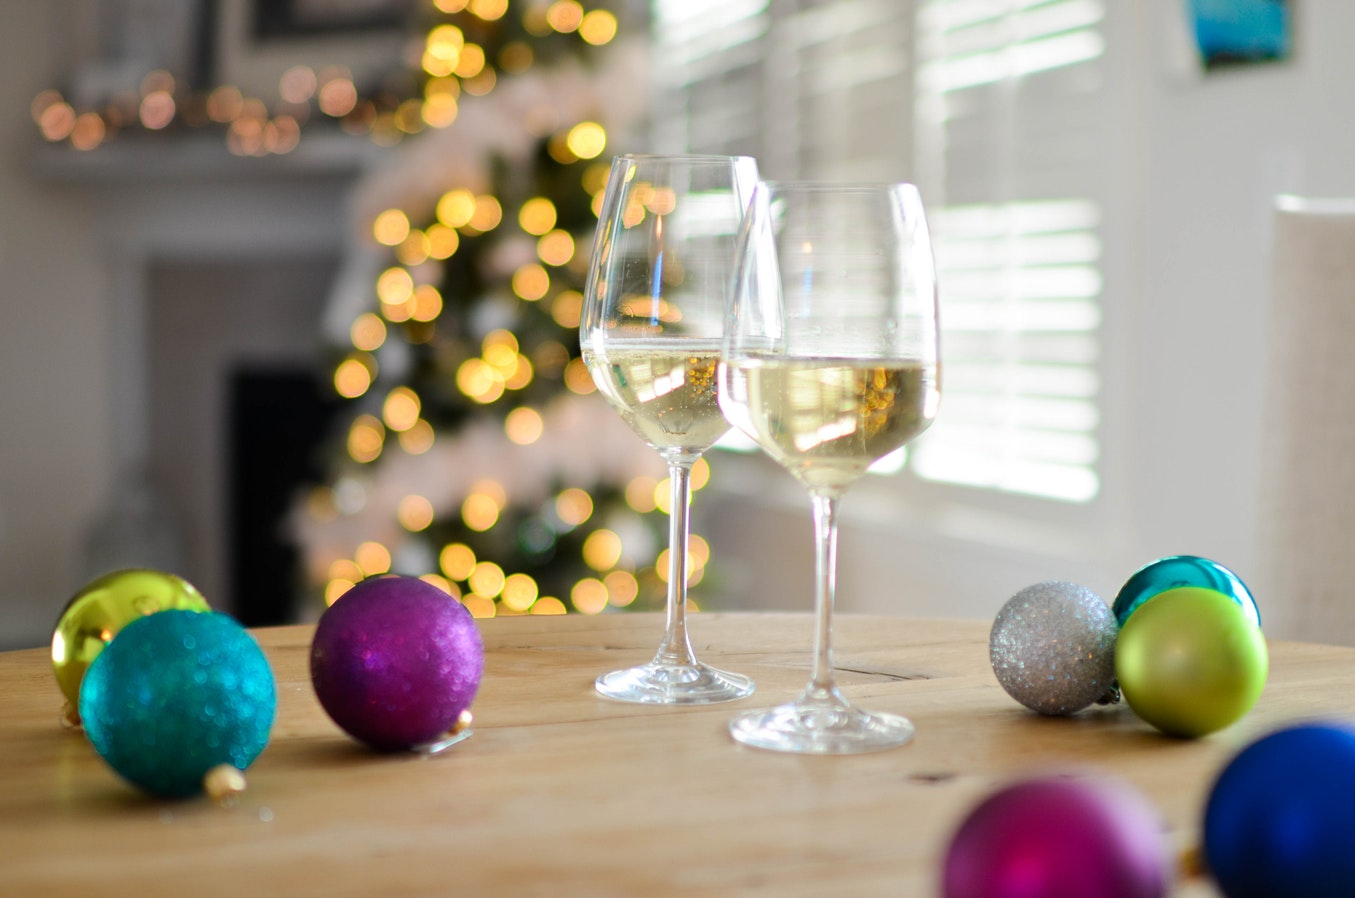 Ornaments and Wine on a table in front of a Christmas Tree